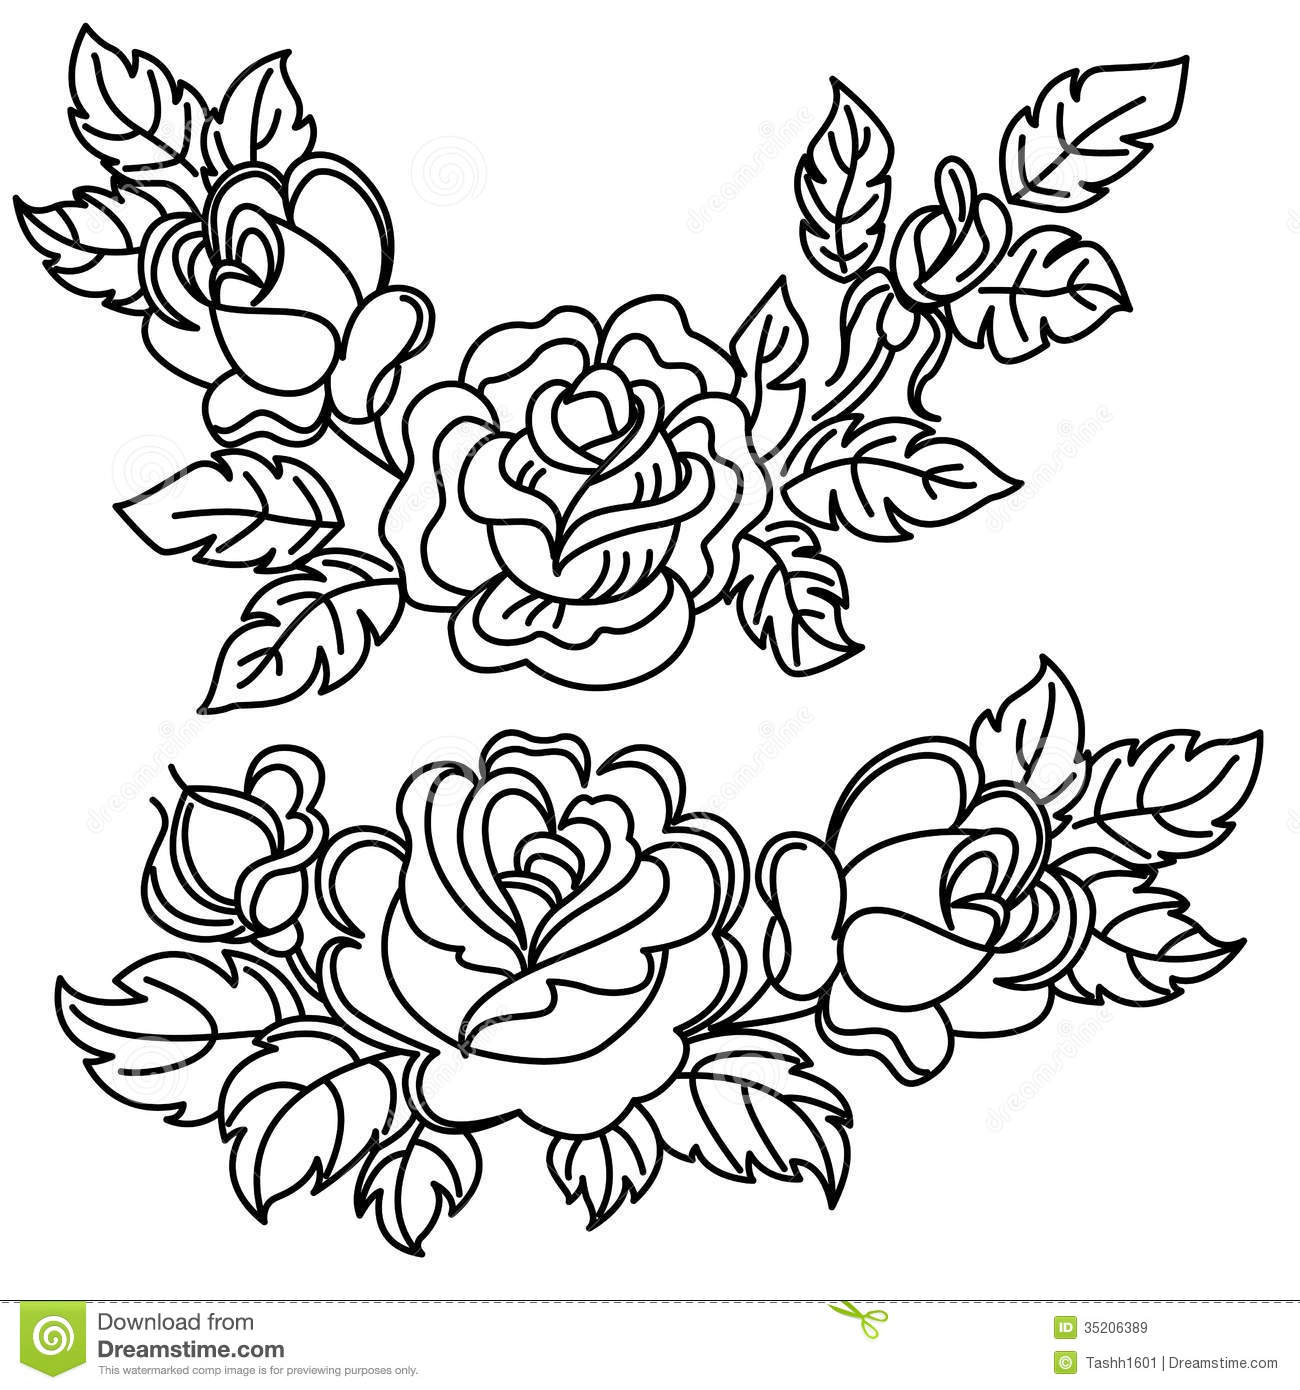 White Rose clipart flower drawing Clip Black Flower Bunch and